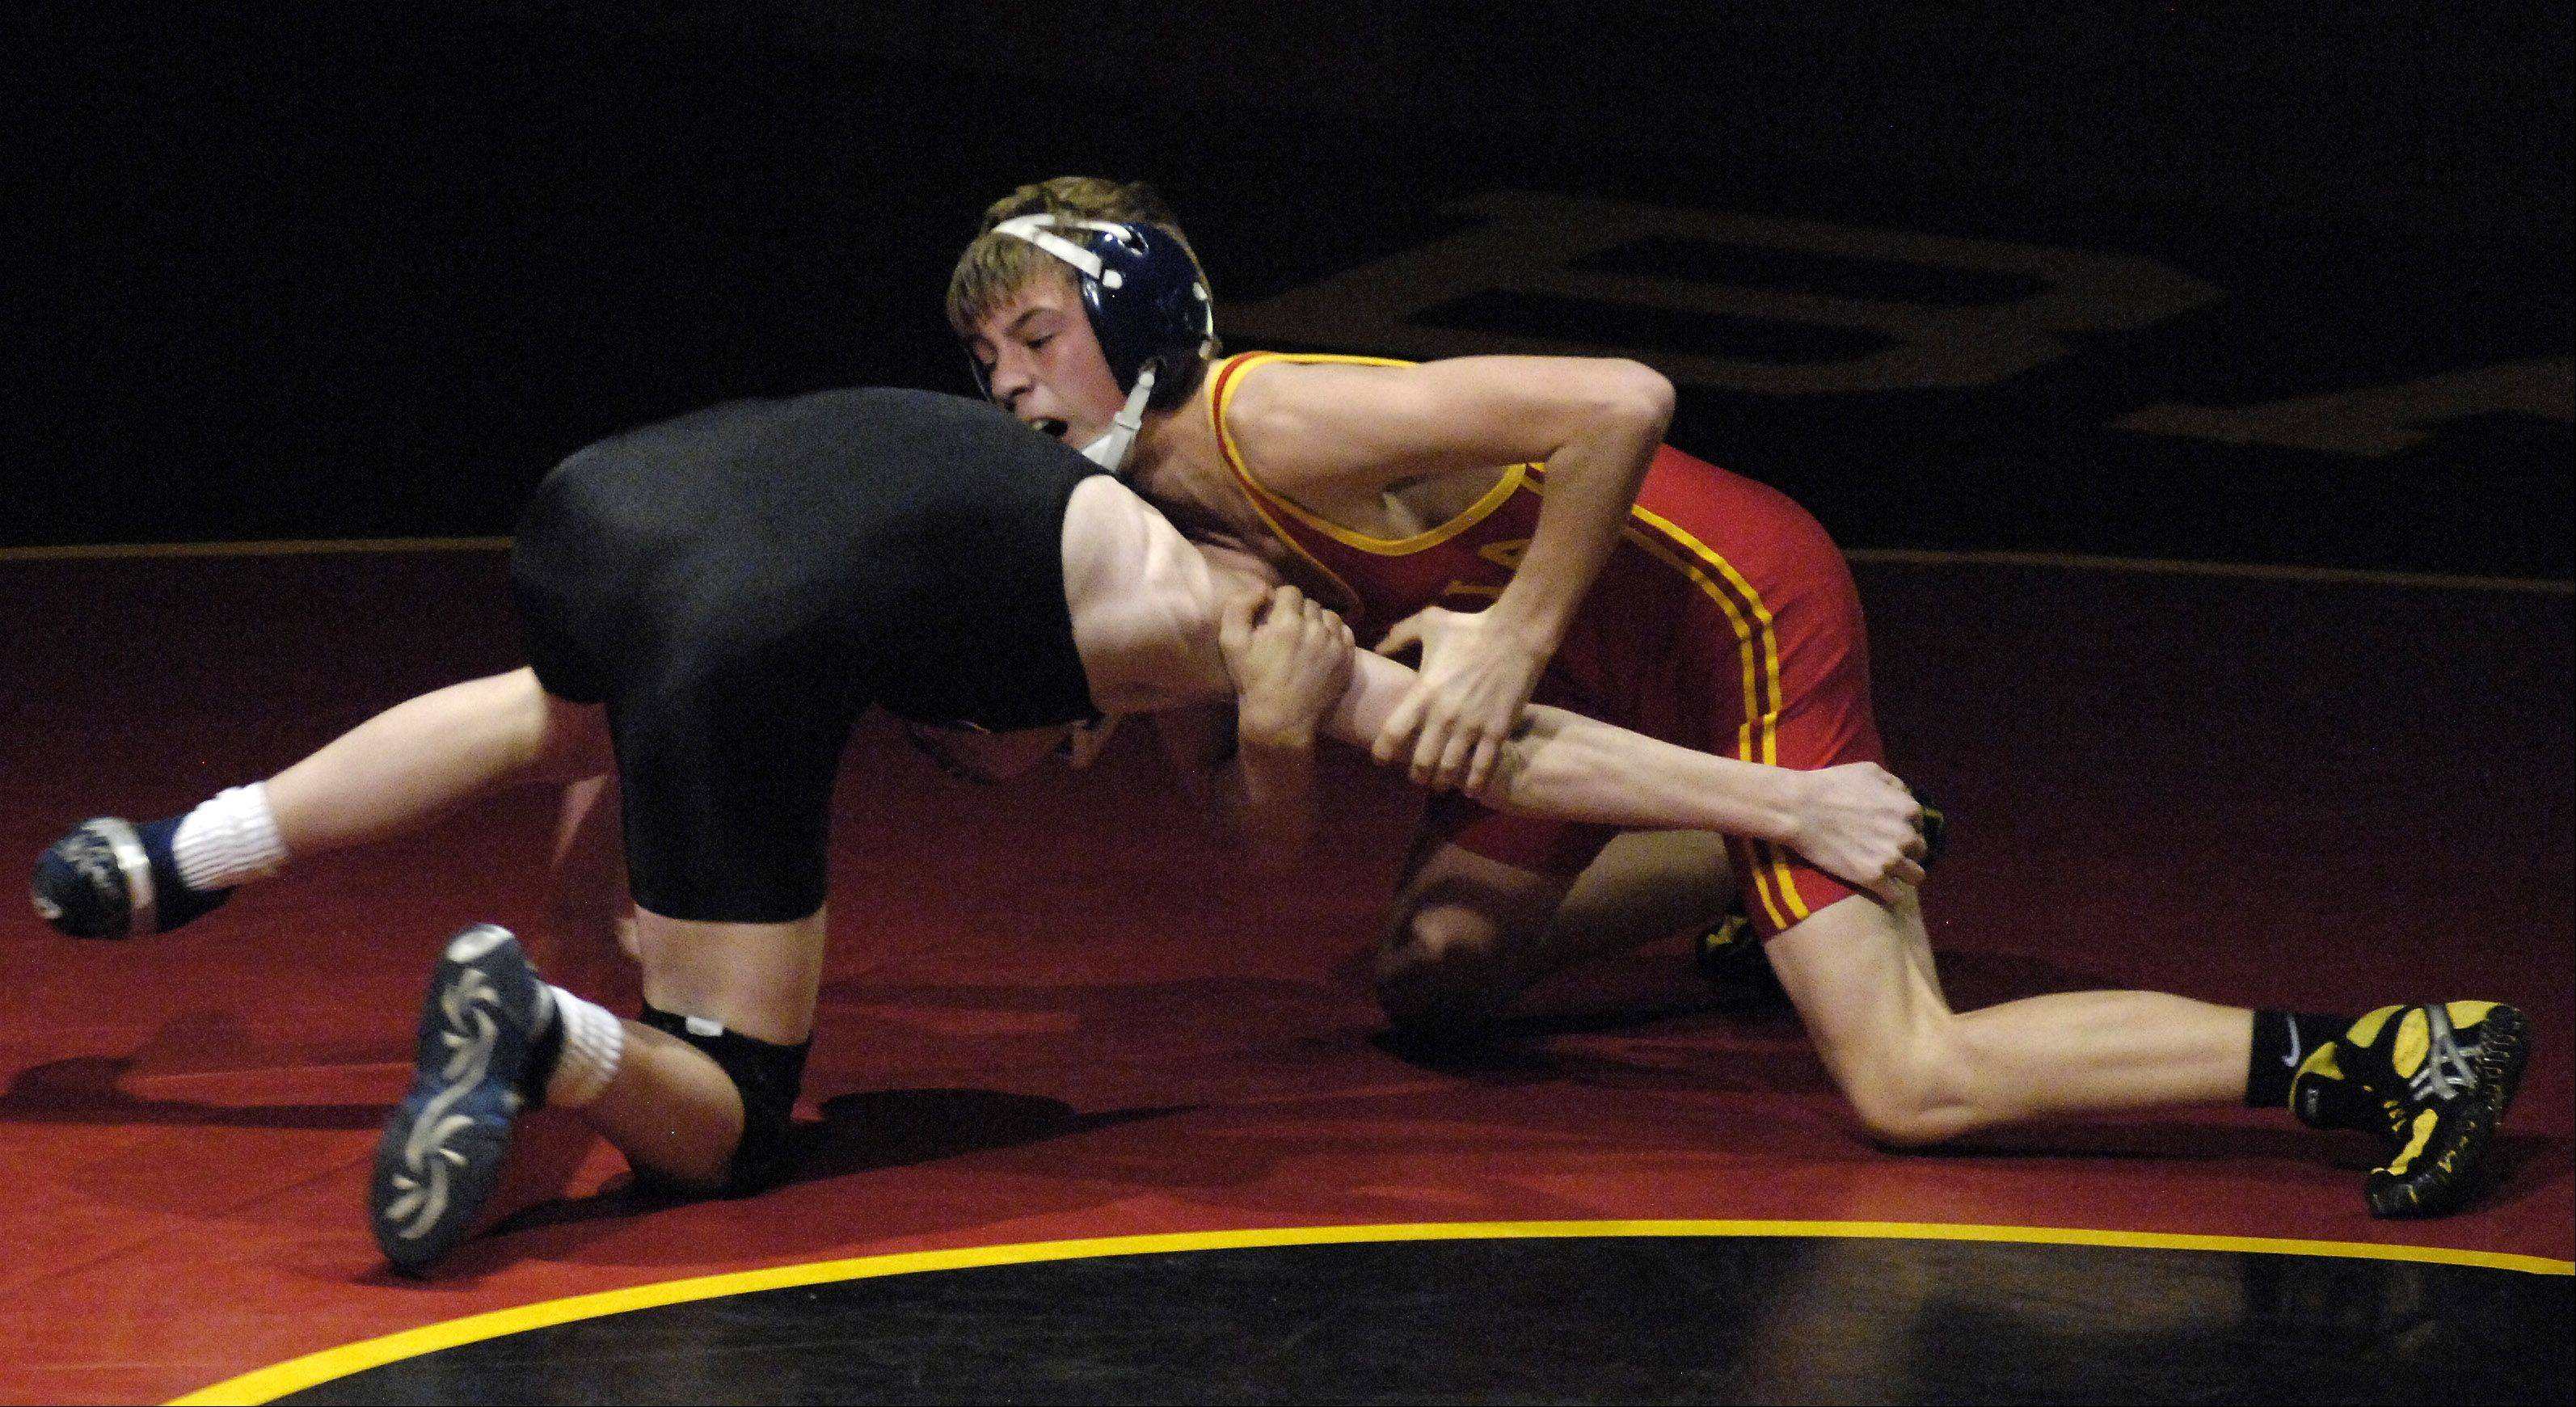 Batavia's Michael Doranski beat Geneva's Steven McDonald in the 106 pound class during wrestling action Thursday at Batavia.